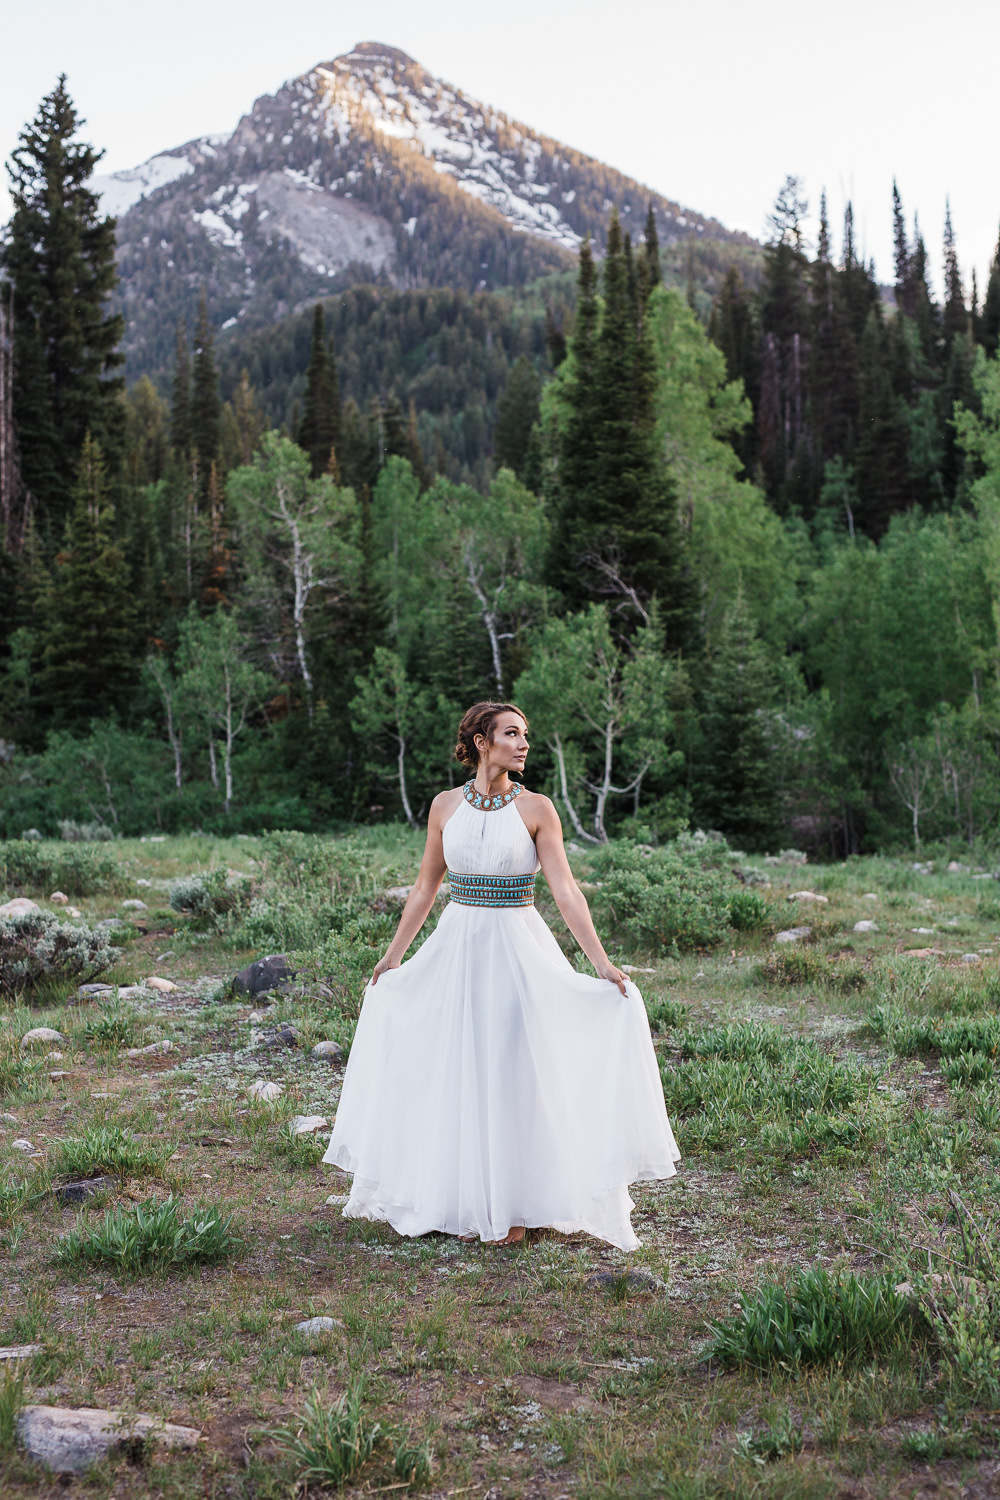 Big-Cottonwood-Canyon-Mountain-Vow-Renewal-Utah-KyleLovesTori-022.jpg